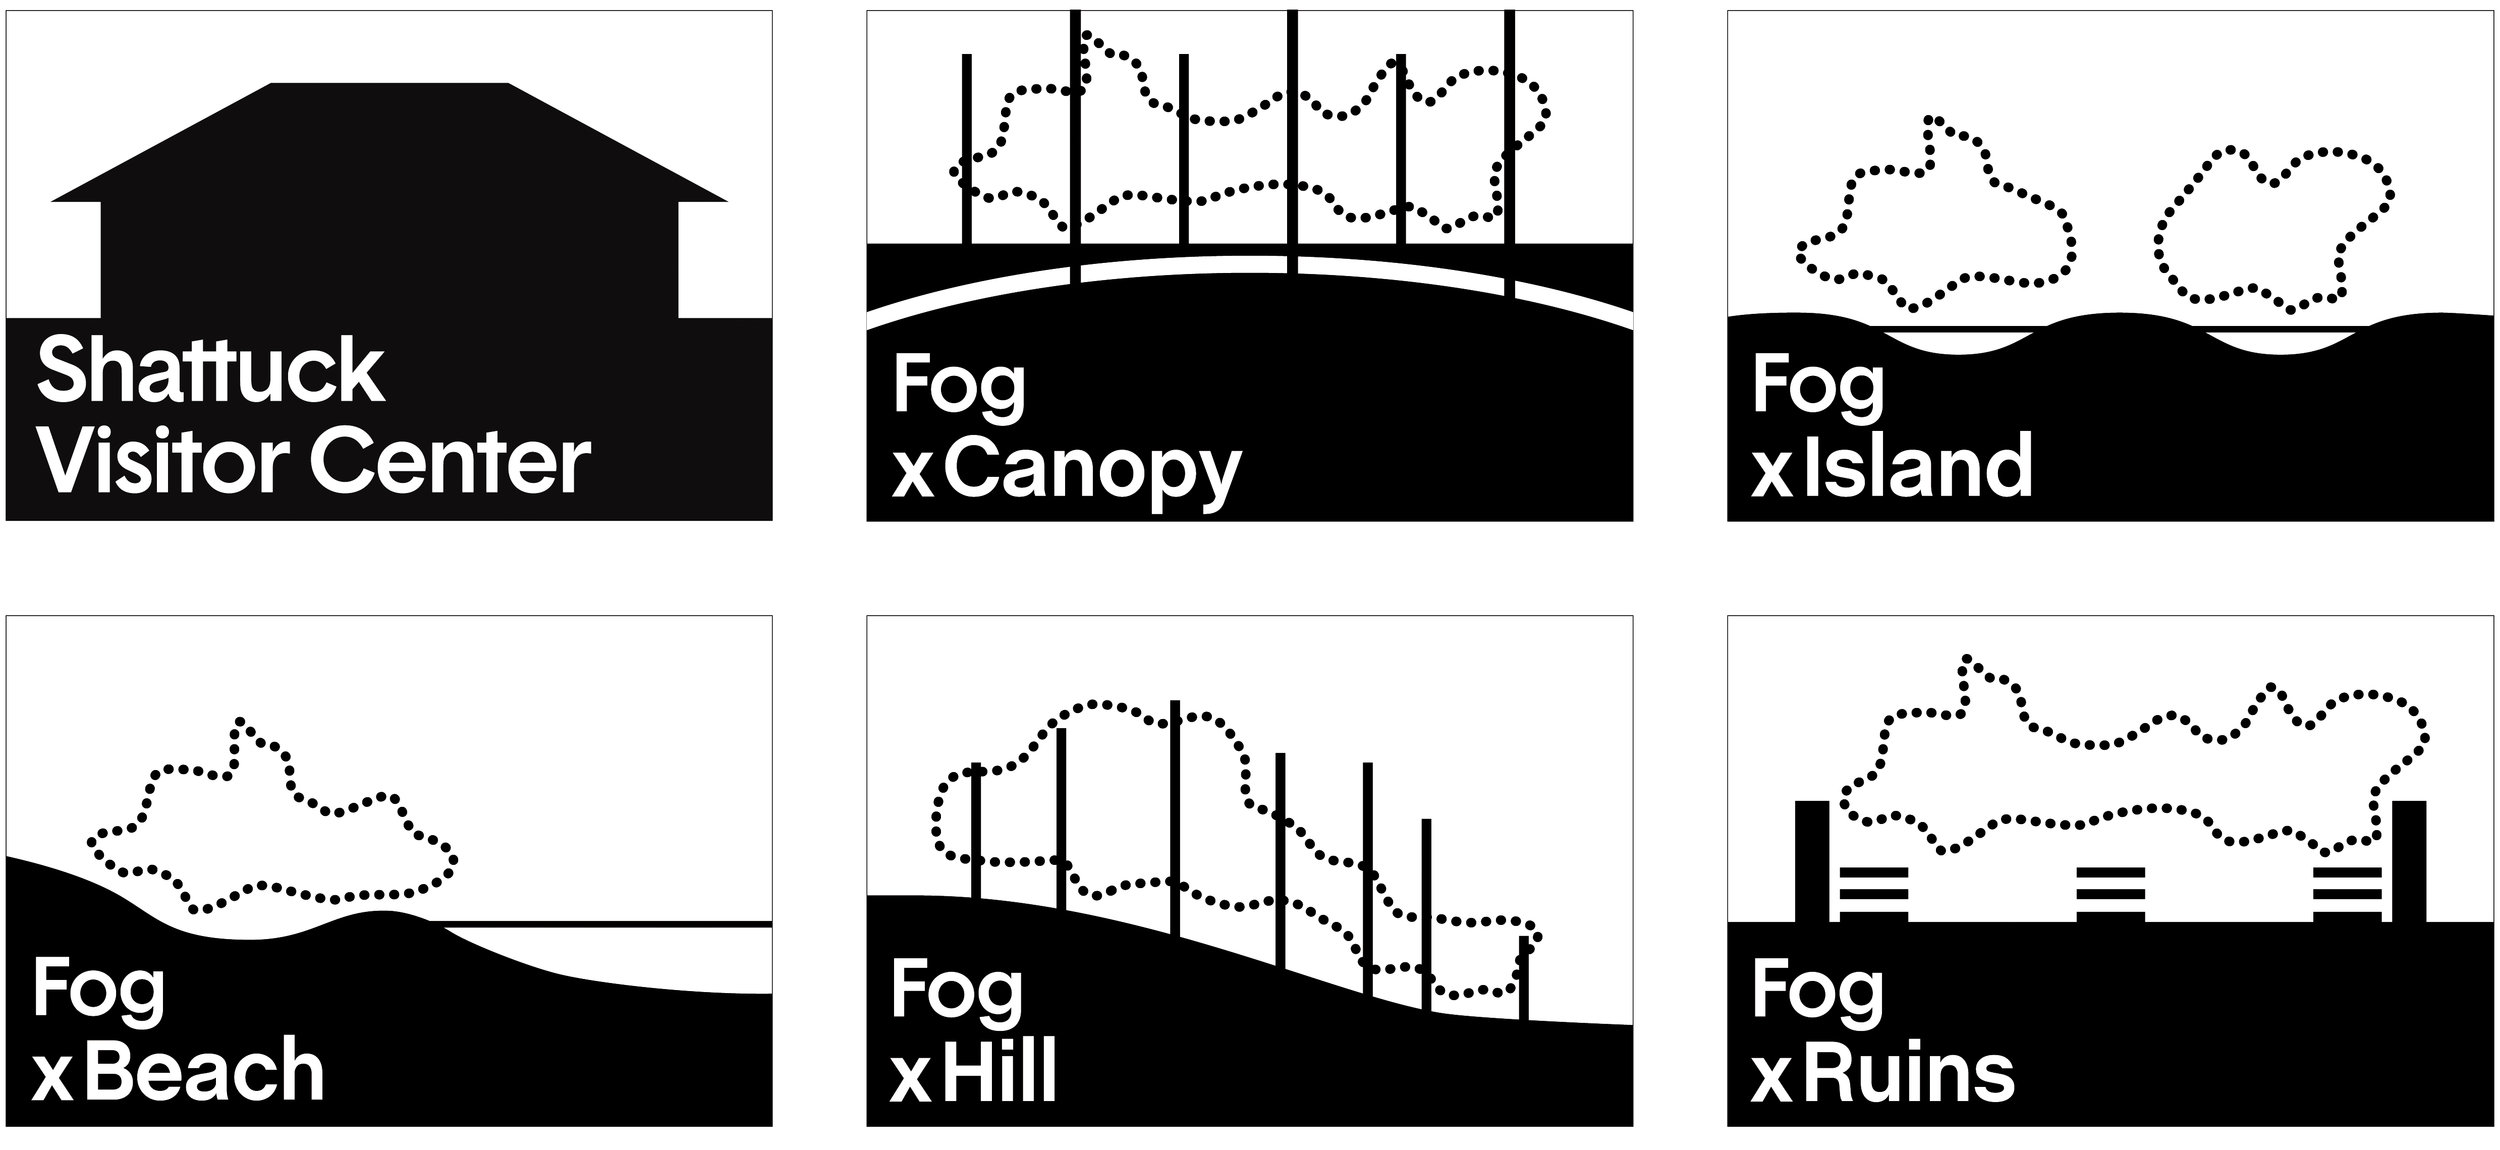 Hieroglyphics were developed as graphic identifiers for each of the fog sculptures and for the installation at the Shattuck Visitor Center.